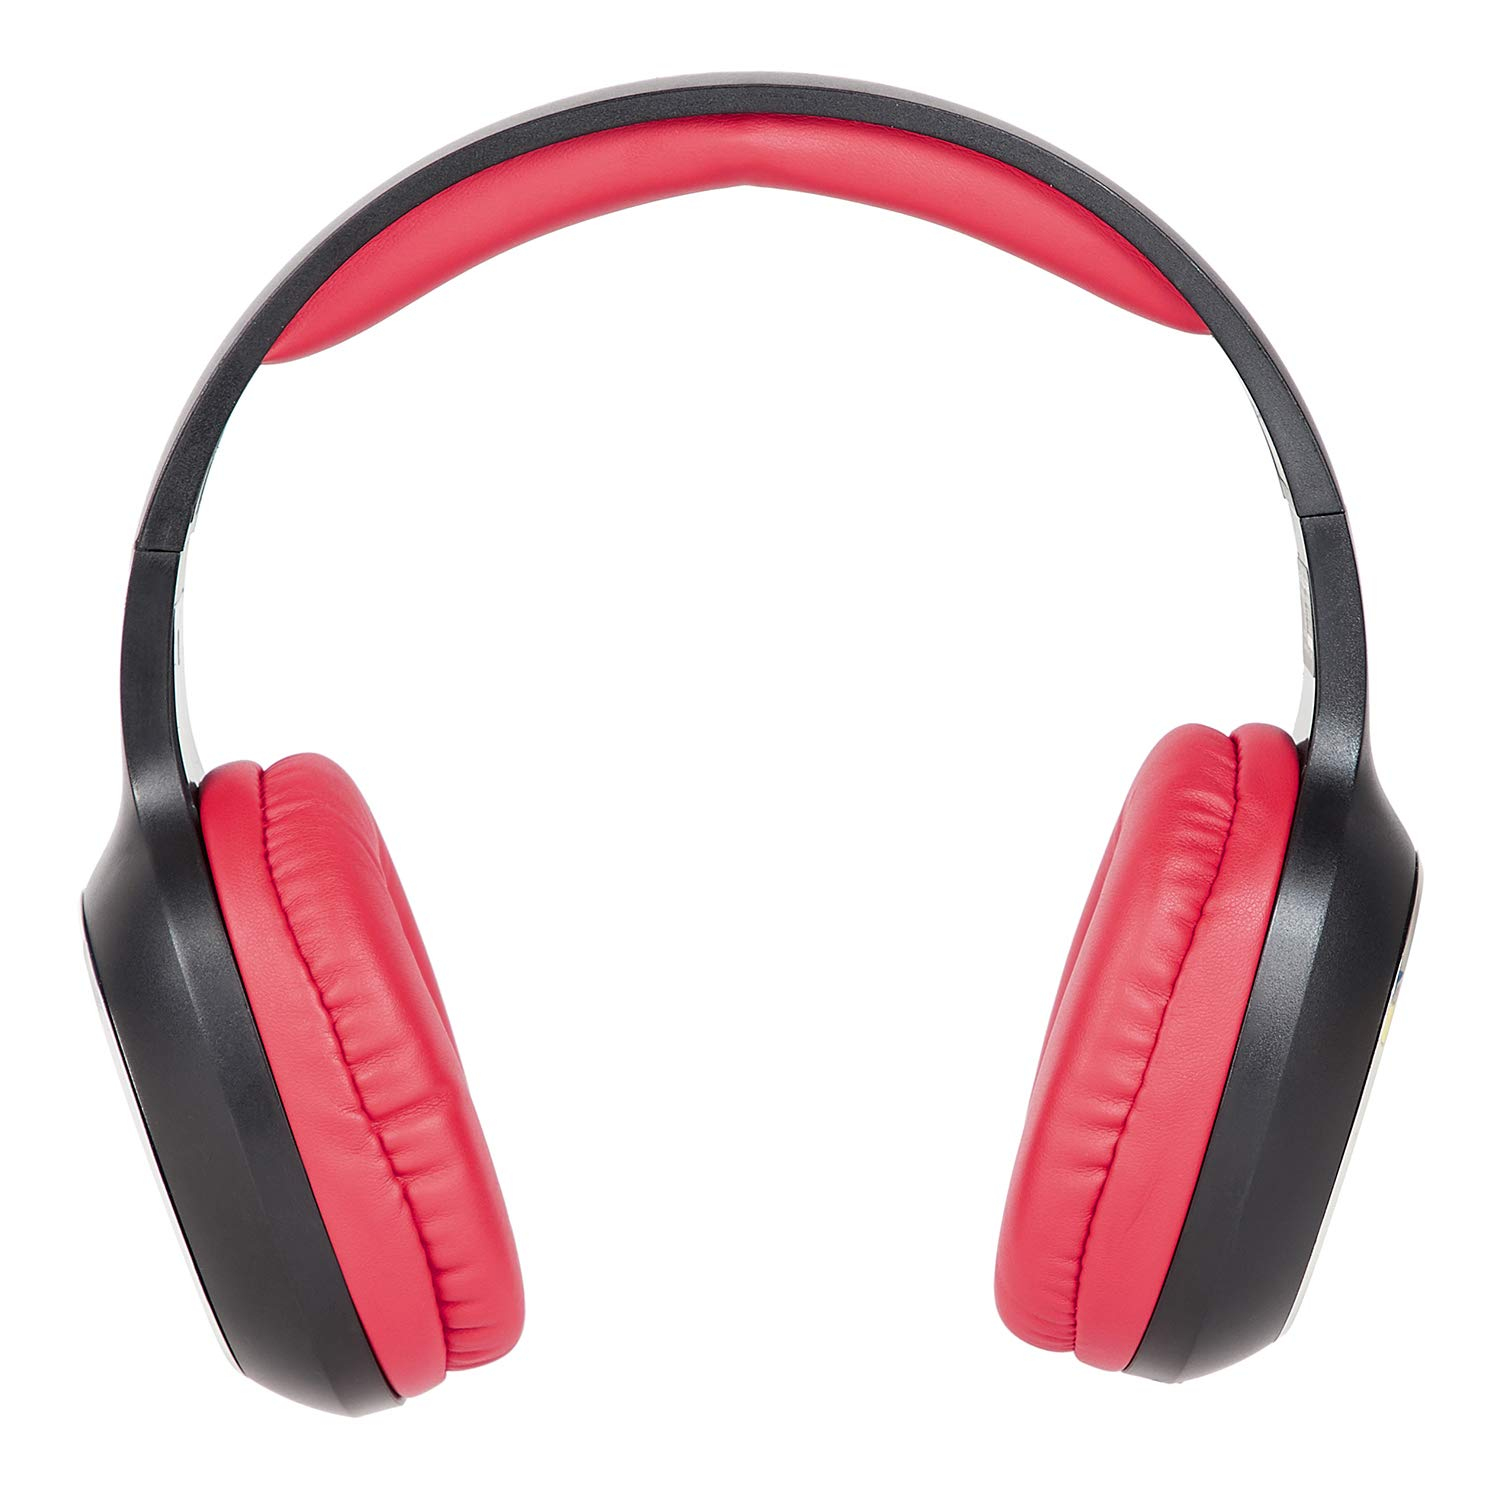 Egate Tornado 204 On-Ear Wireless Bluetooth Headphone with Mic (Red)